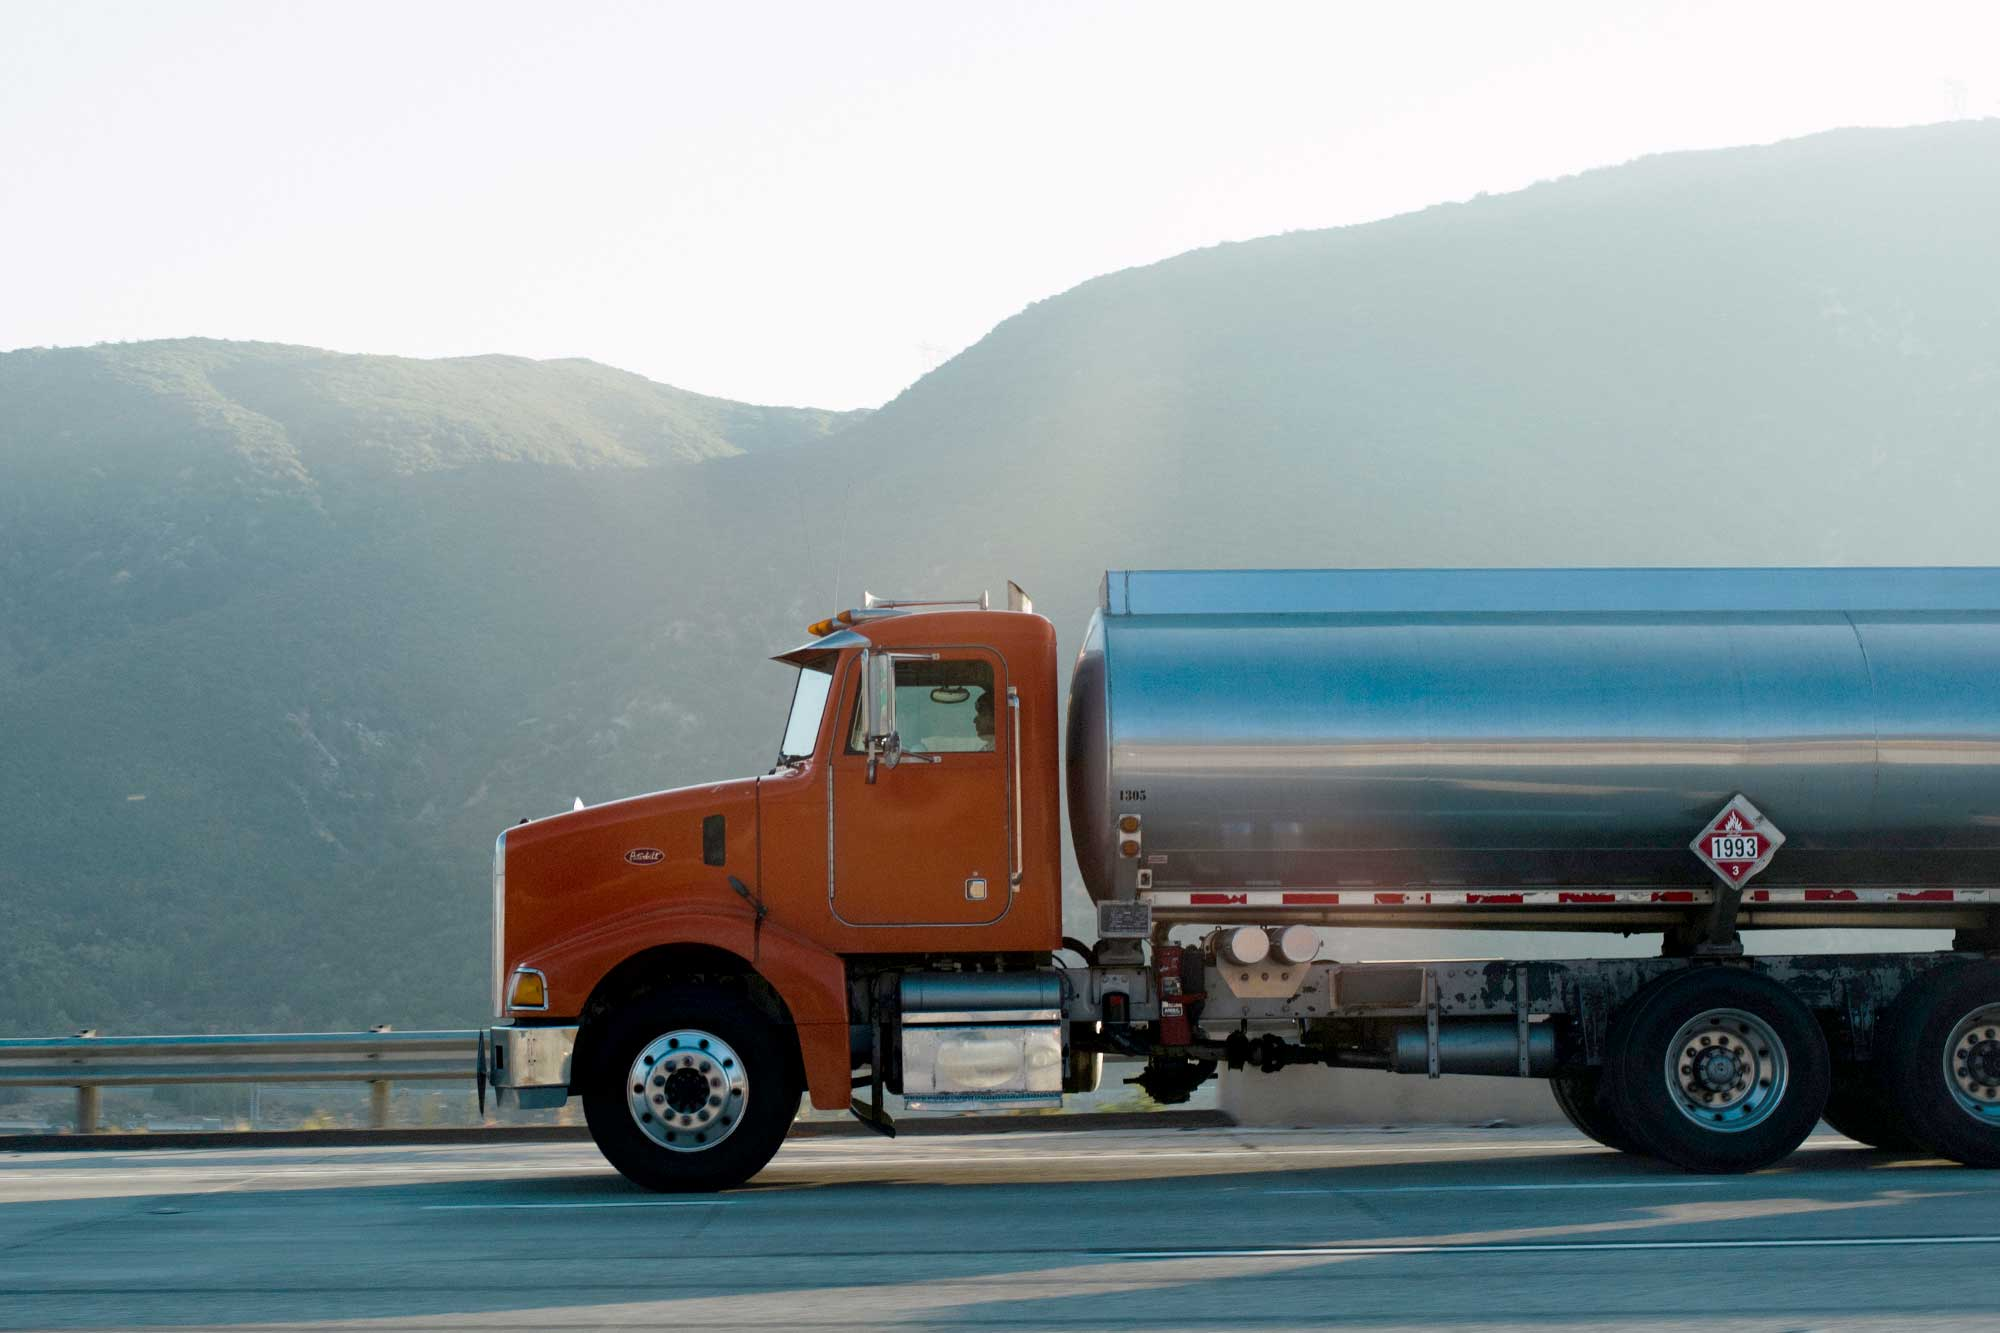 What Does CDL Stand For?